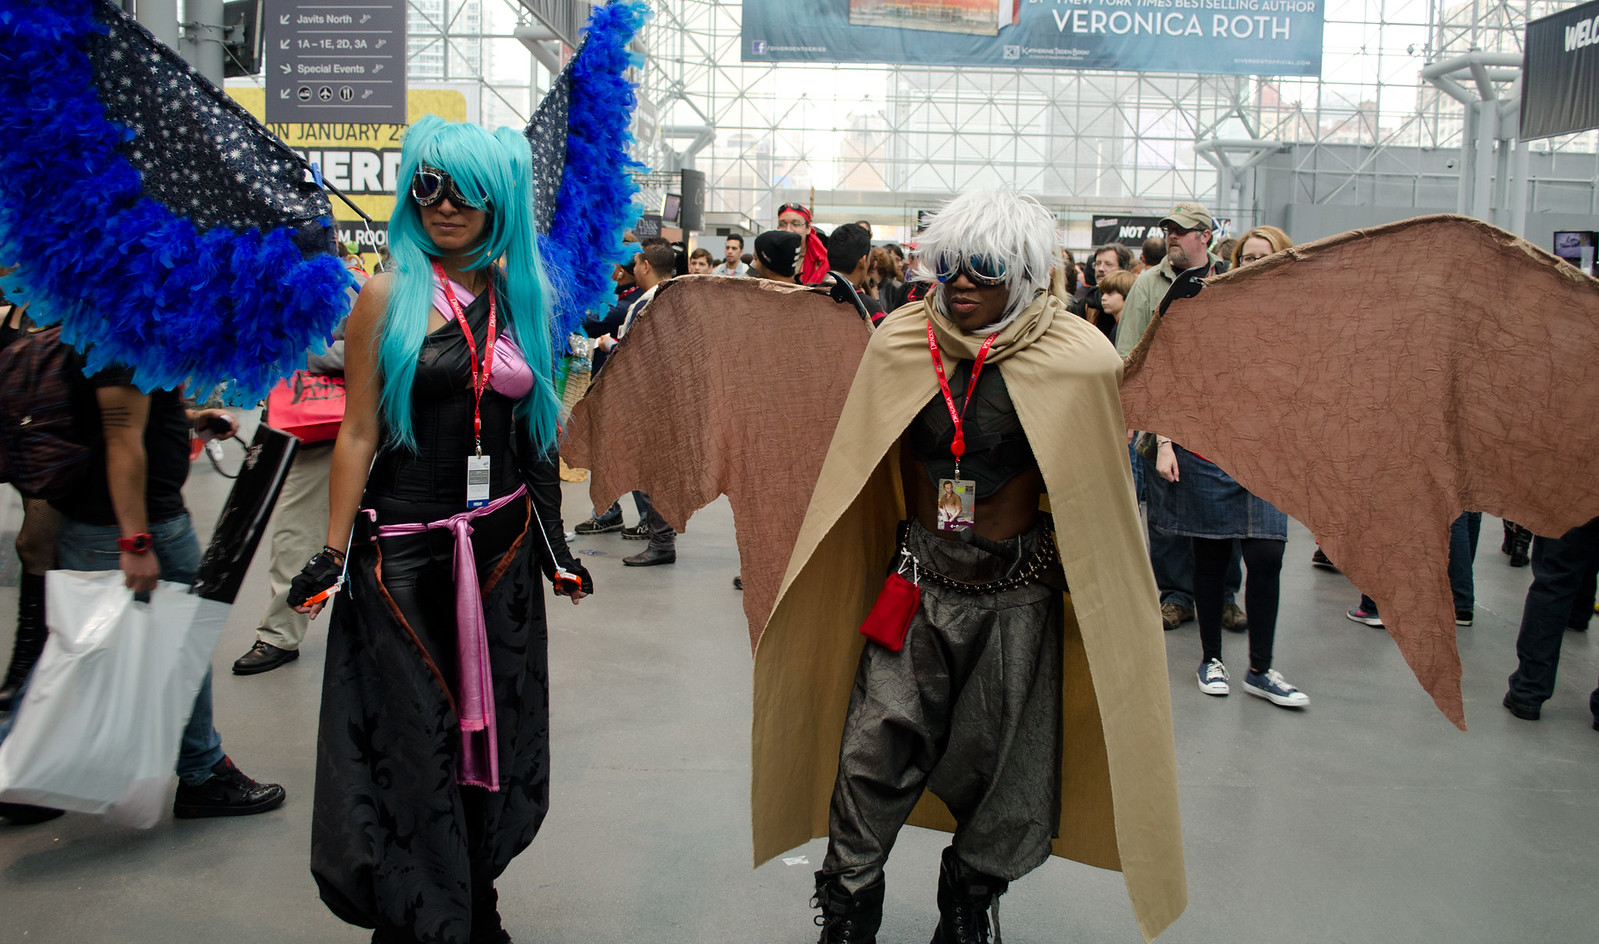 NYCC Cosplay 2013